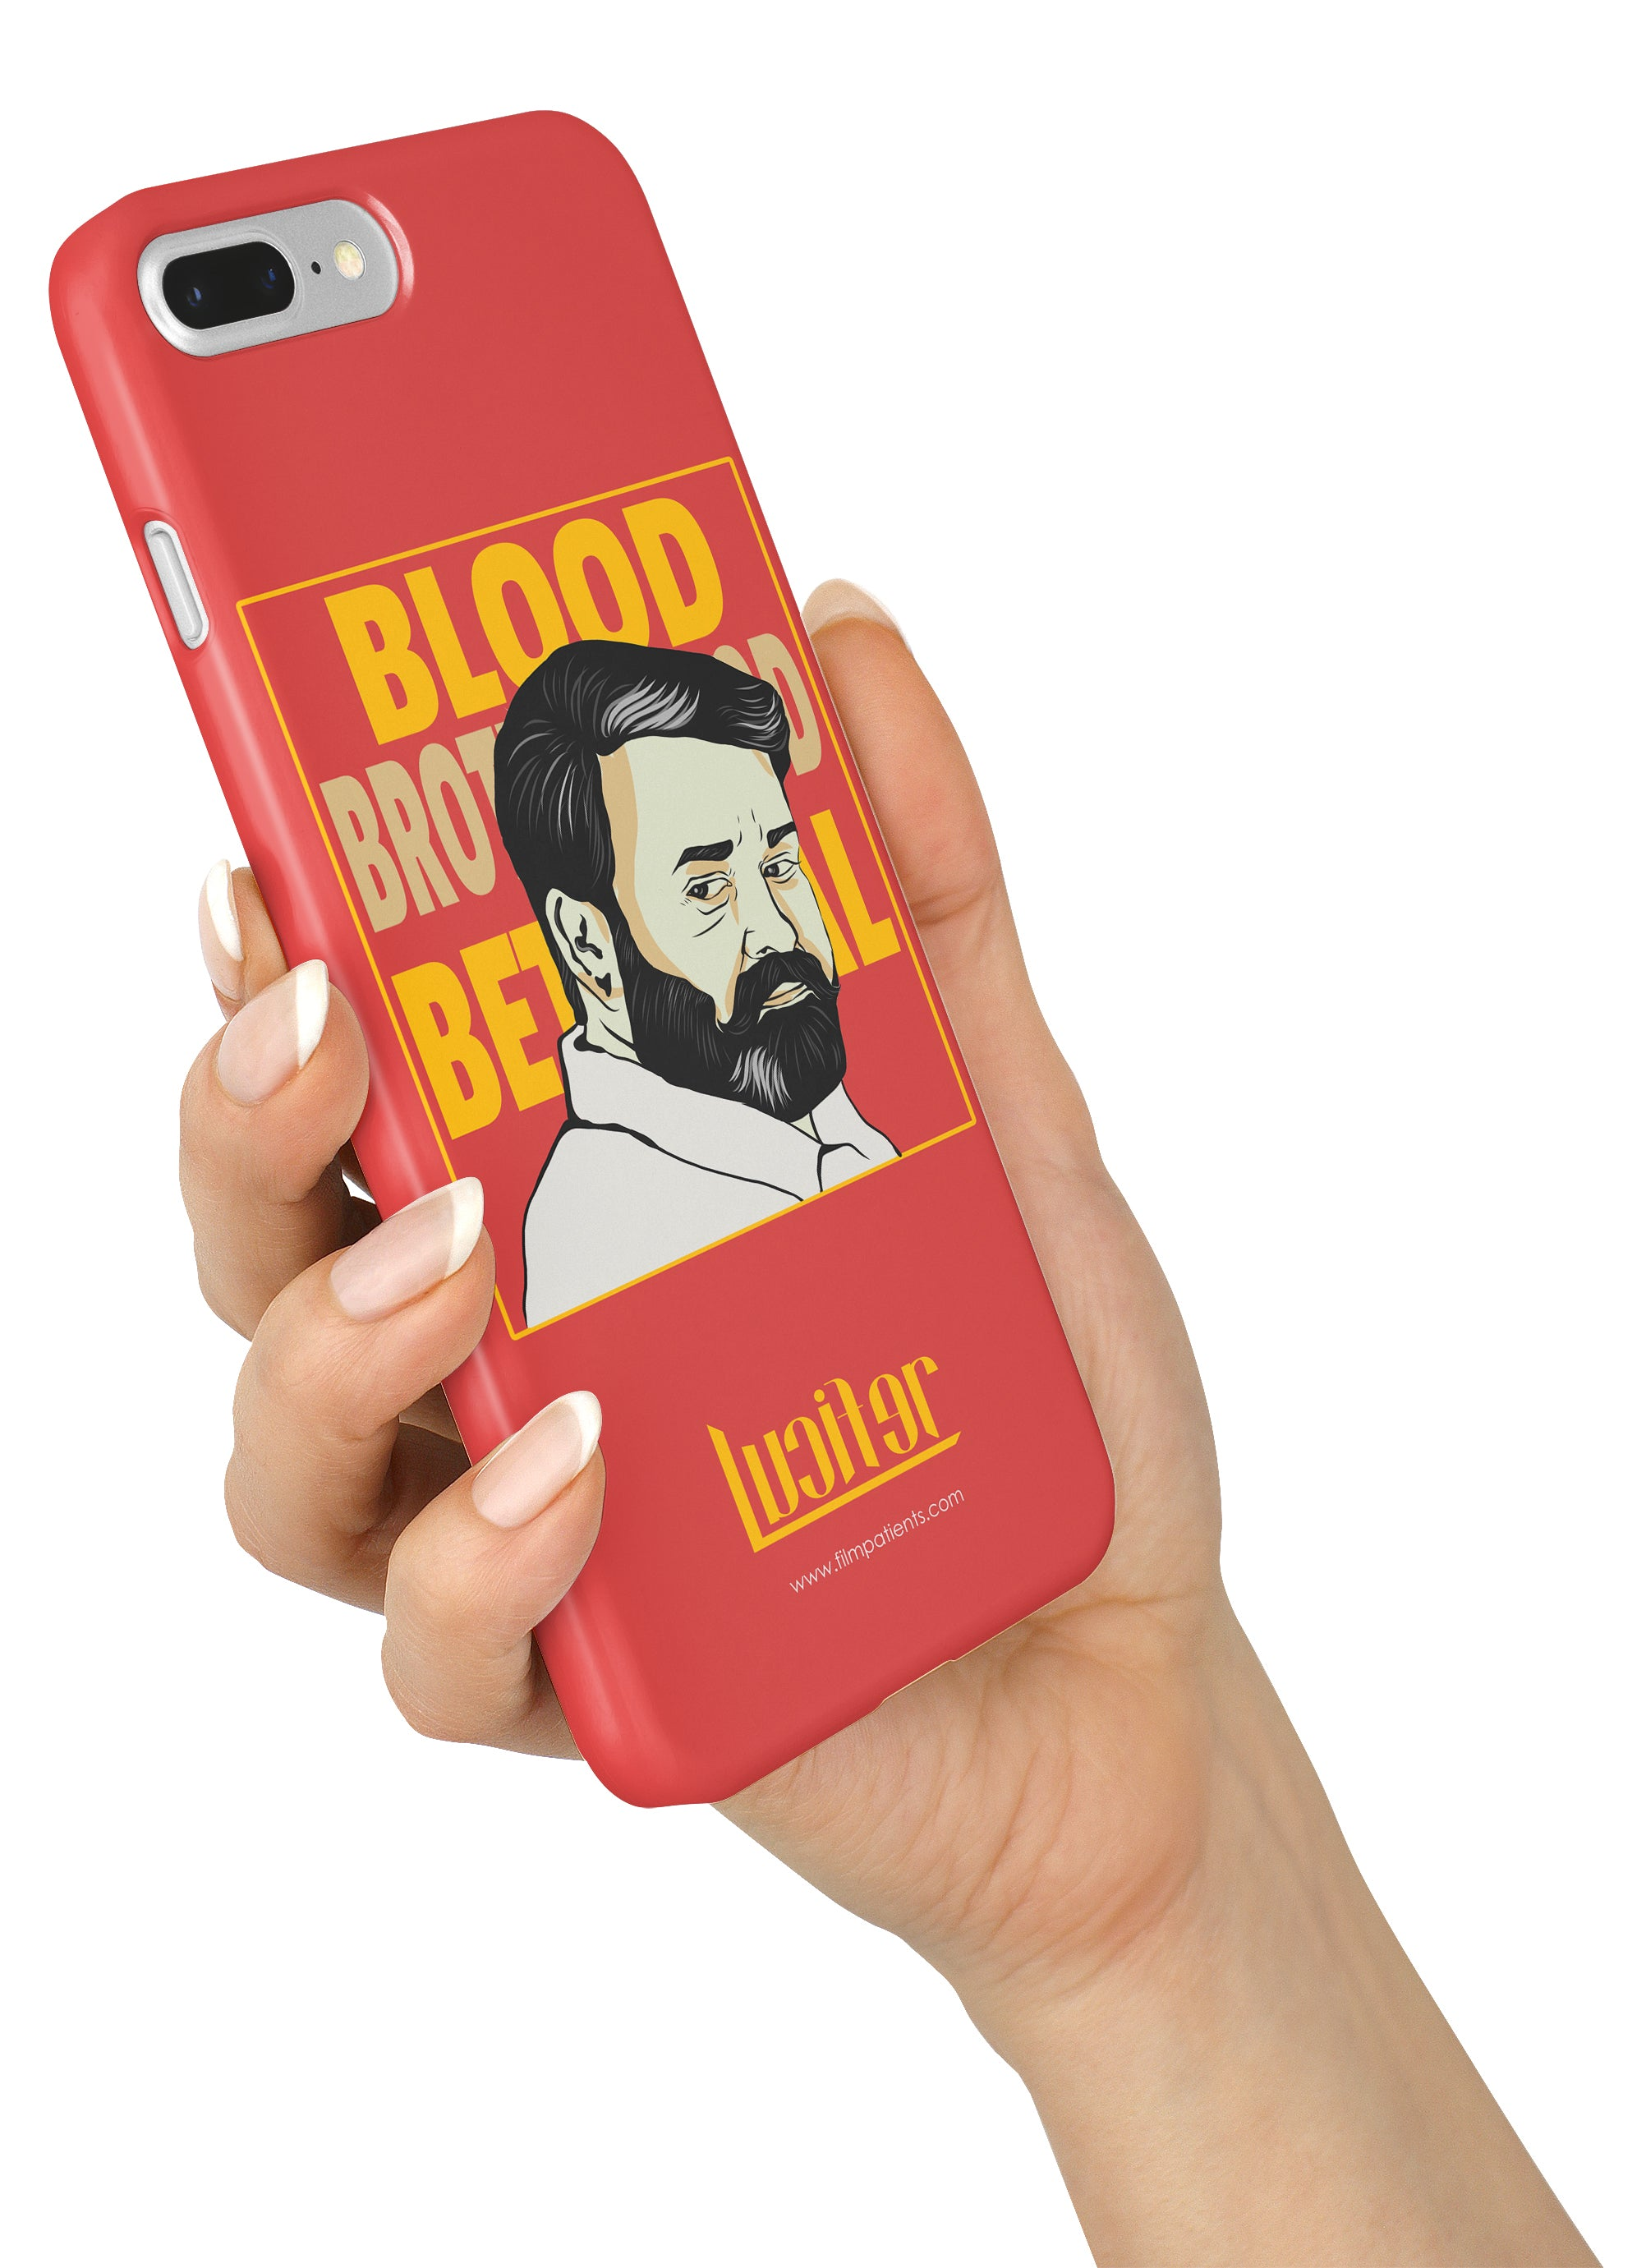 Lucifer : Blood, Brotherhood, Betrayal Mobile Cover